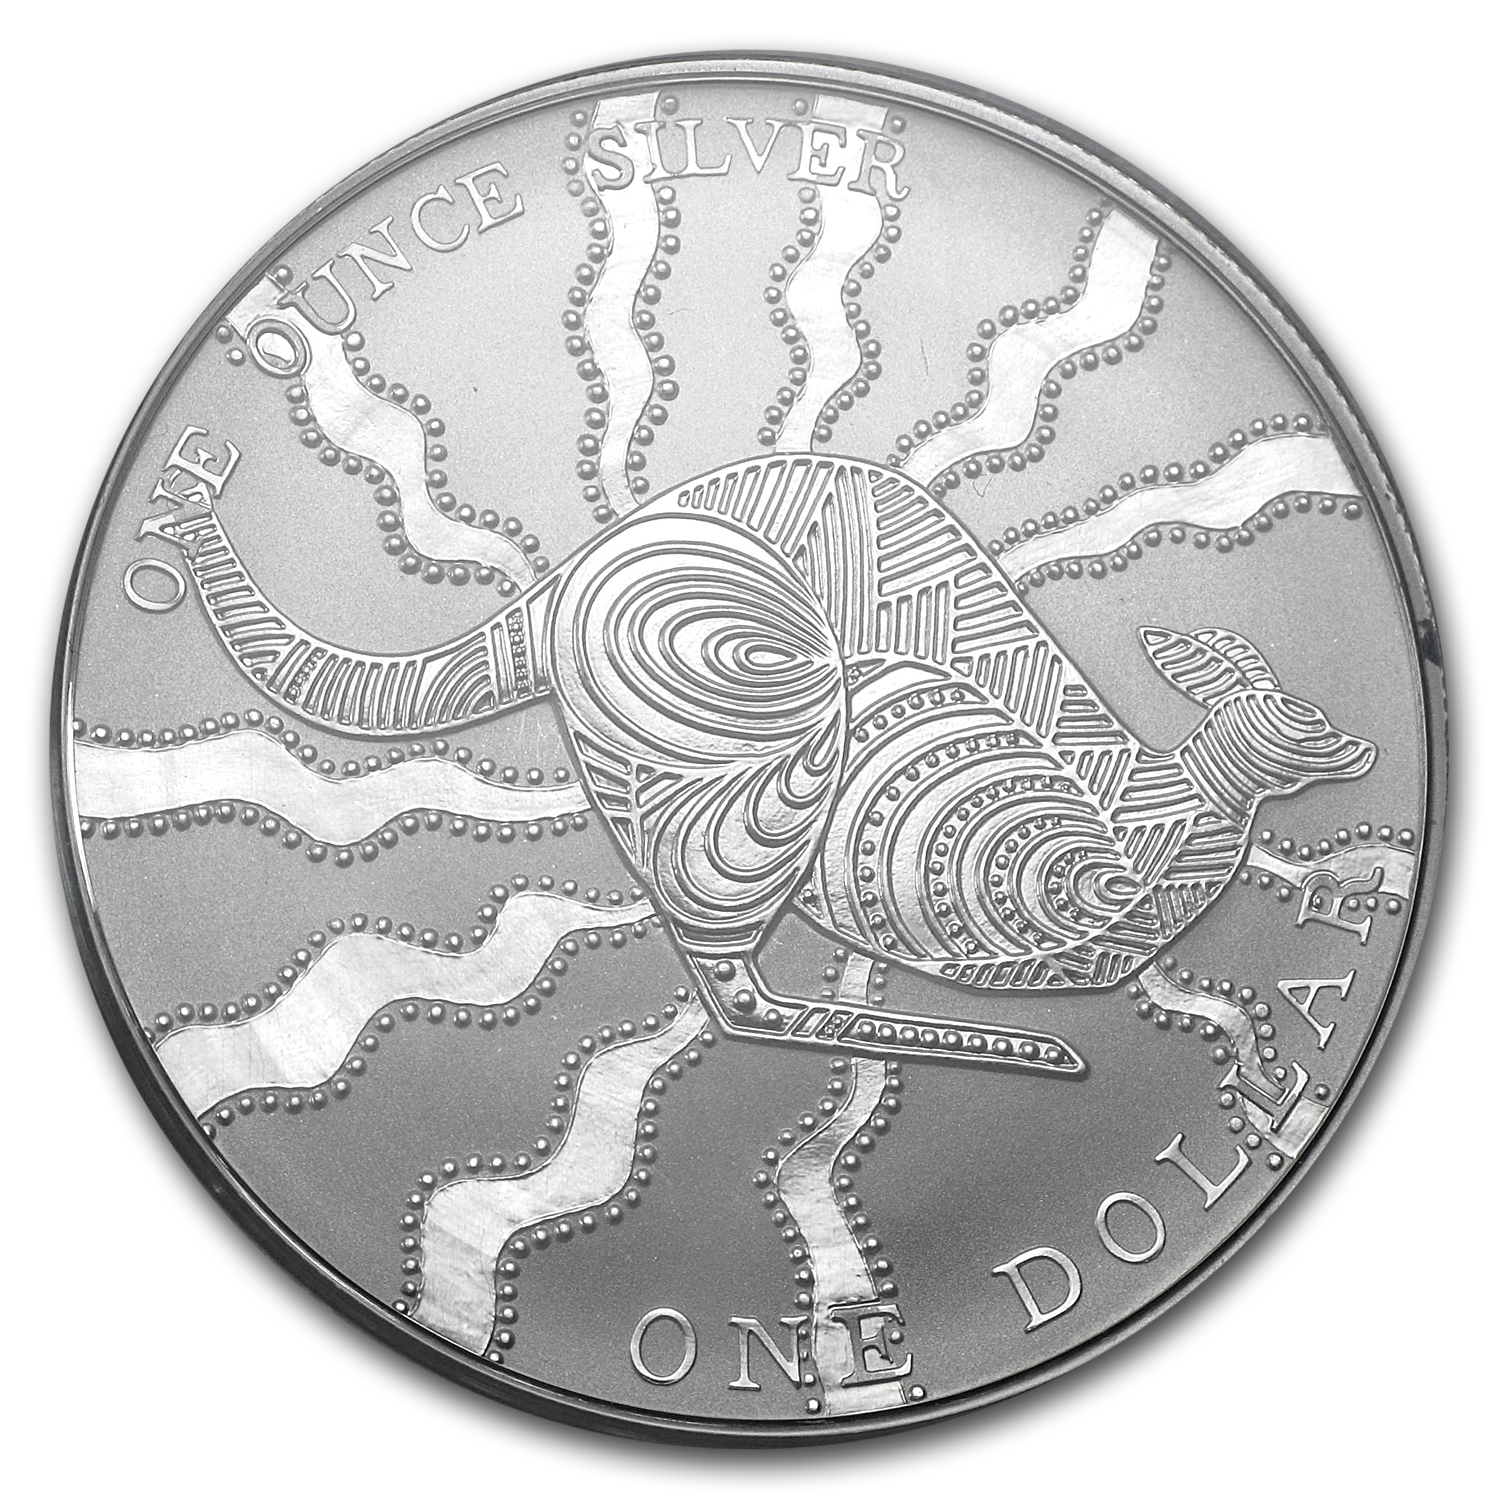 2002 1 oz Australian Silver Kangaroo (In Display Card)